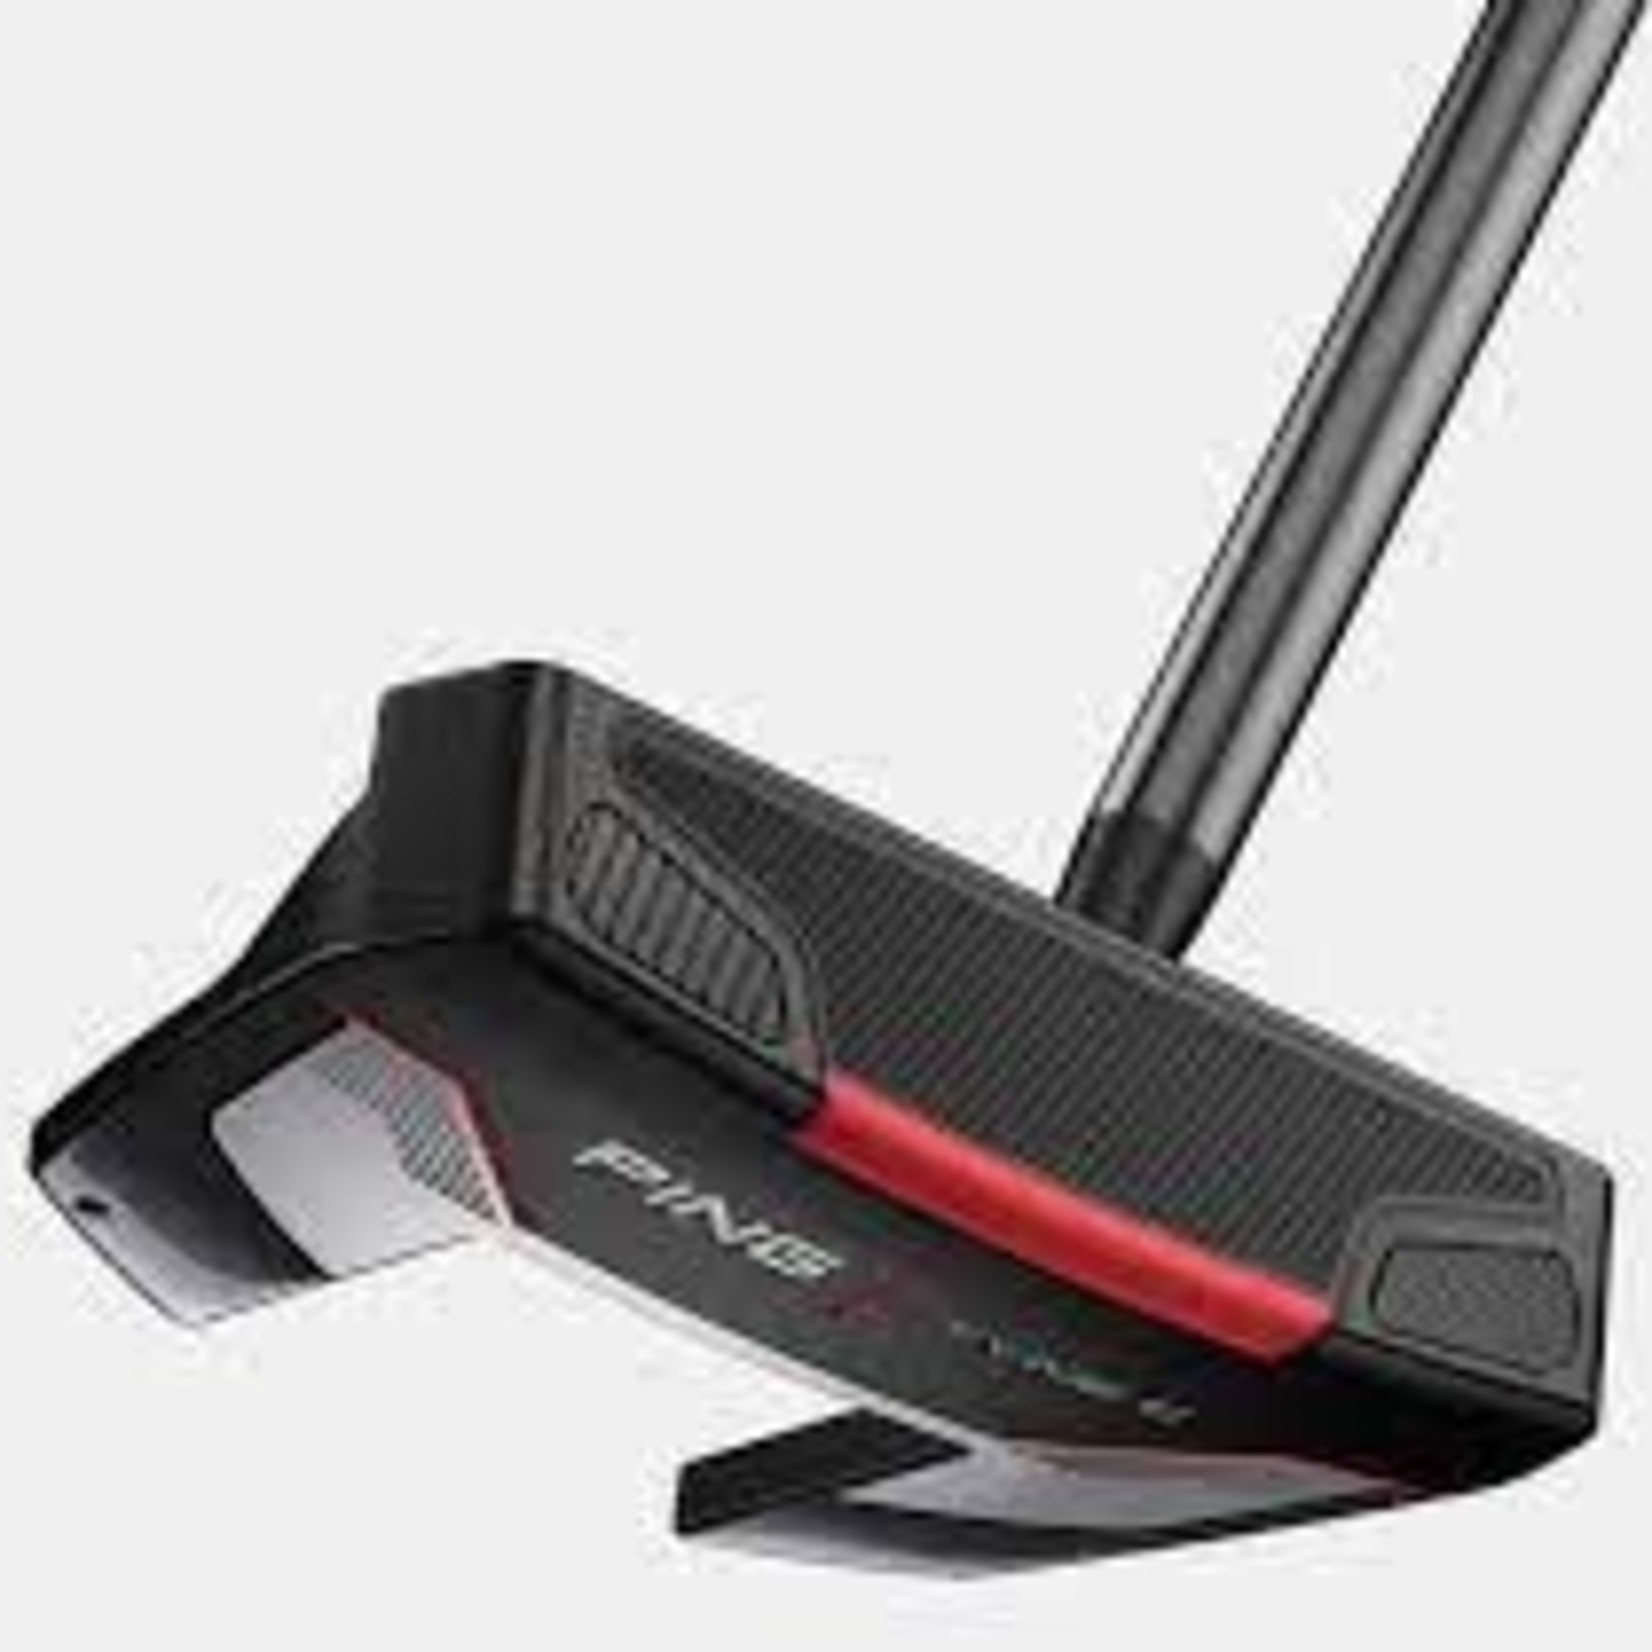 PING PING 2021 SERIES PUTTERS